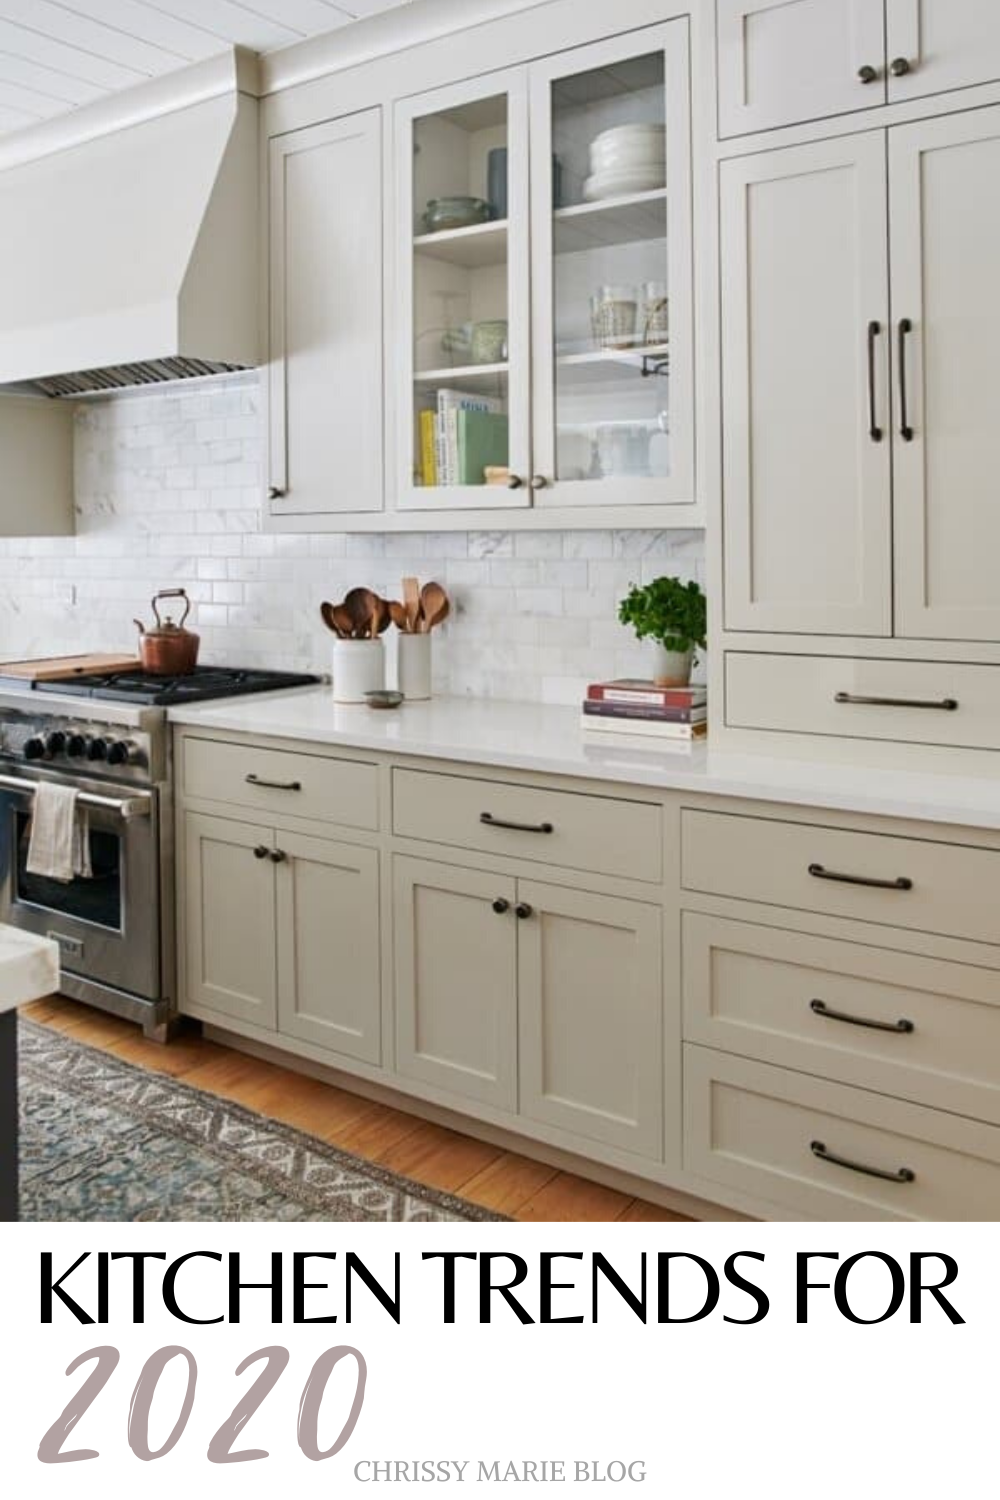 5 Kitchen Trends For 2020 Keeping Your New Kitchen Relevant